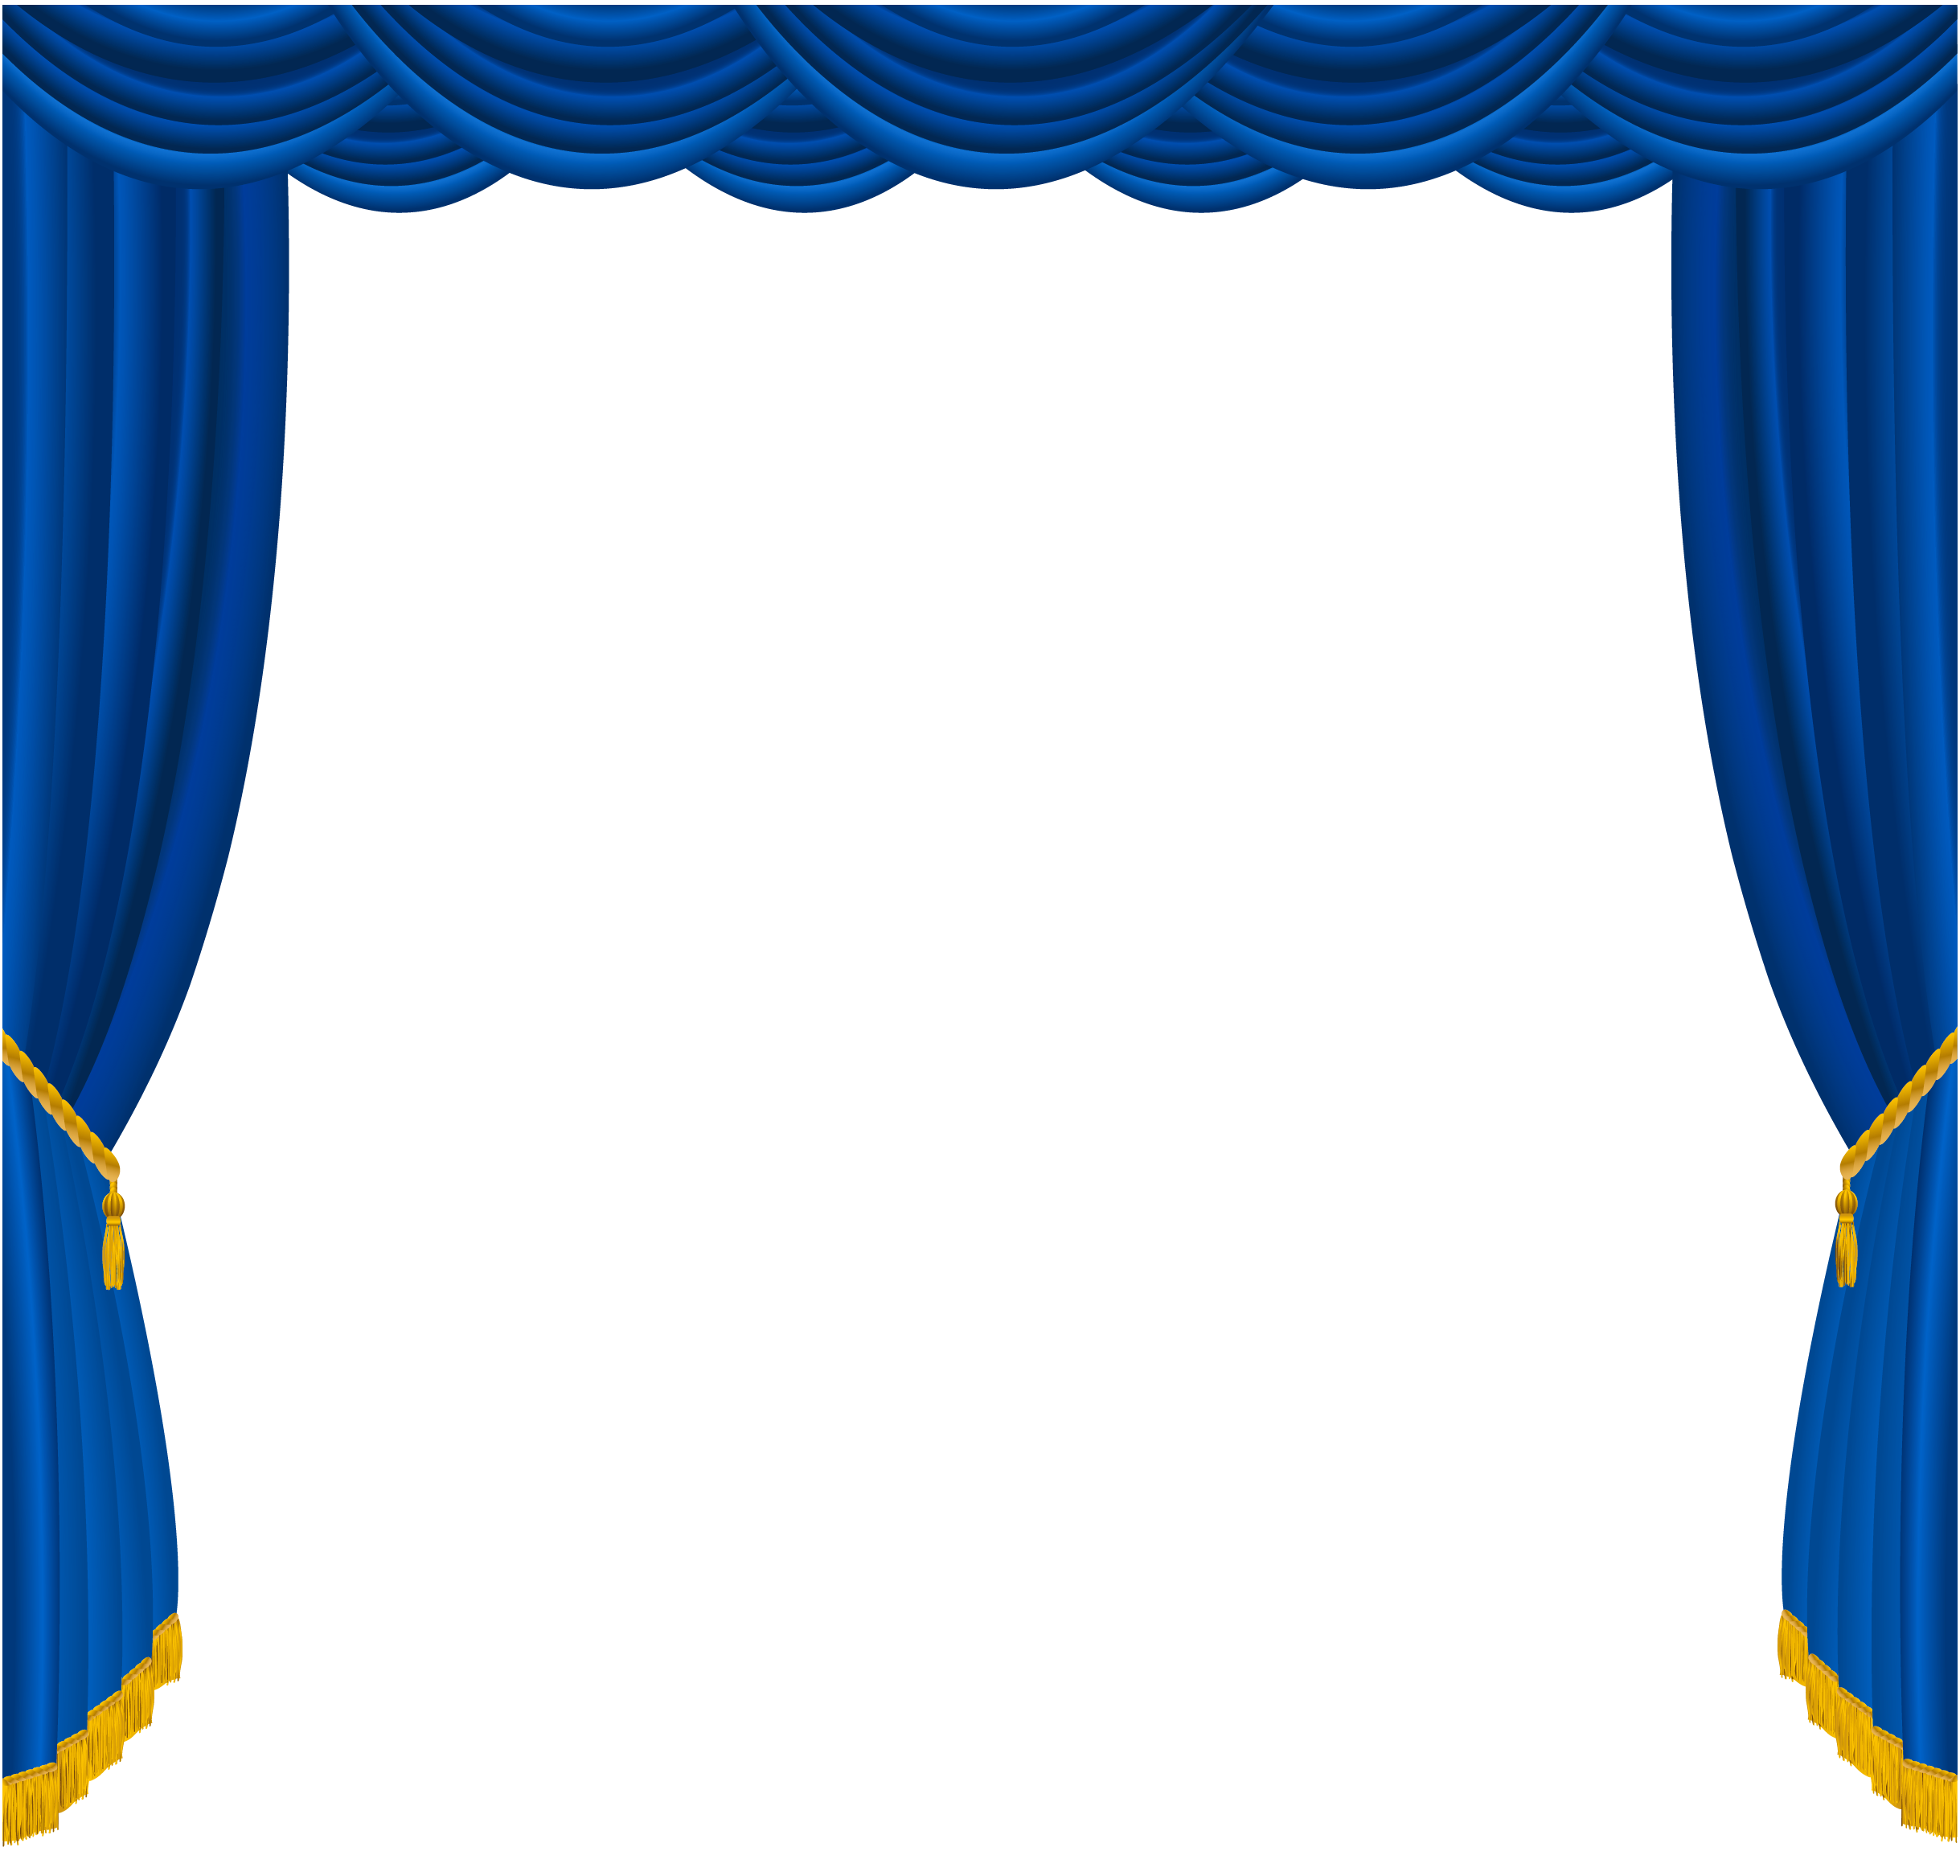 Curtain clipart blue curtain Size Yopriceville  Transparent Gallery